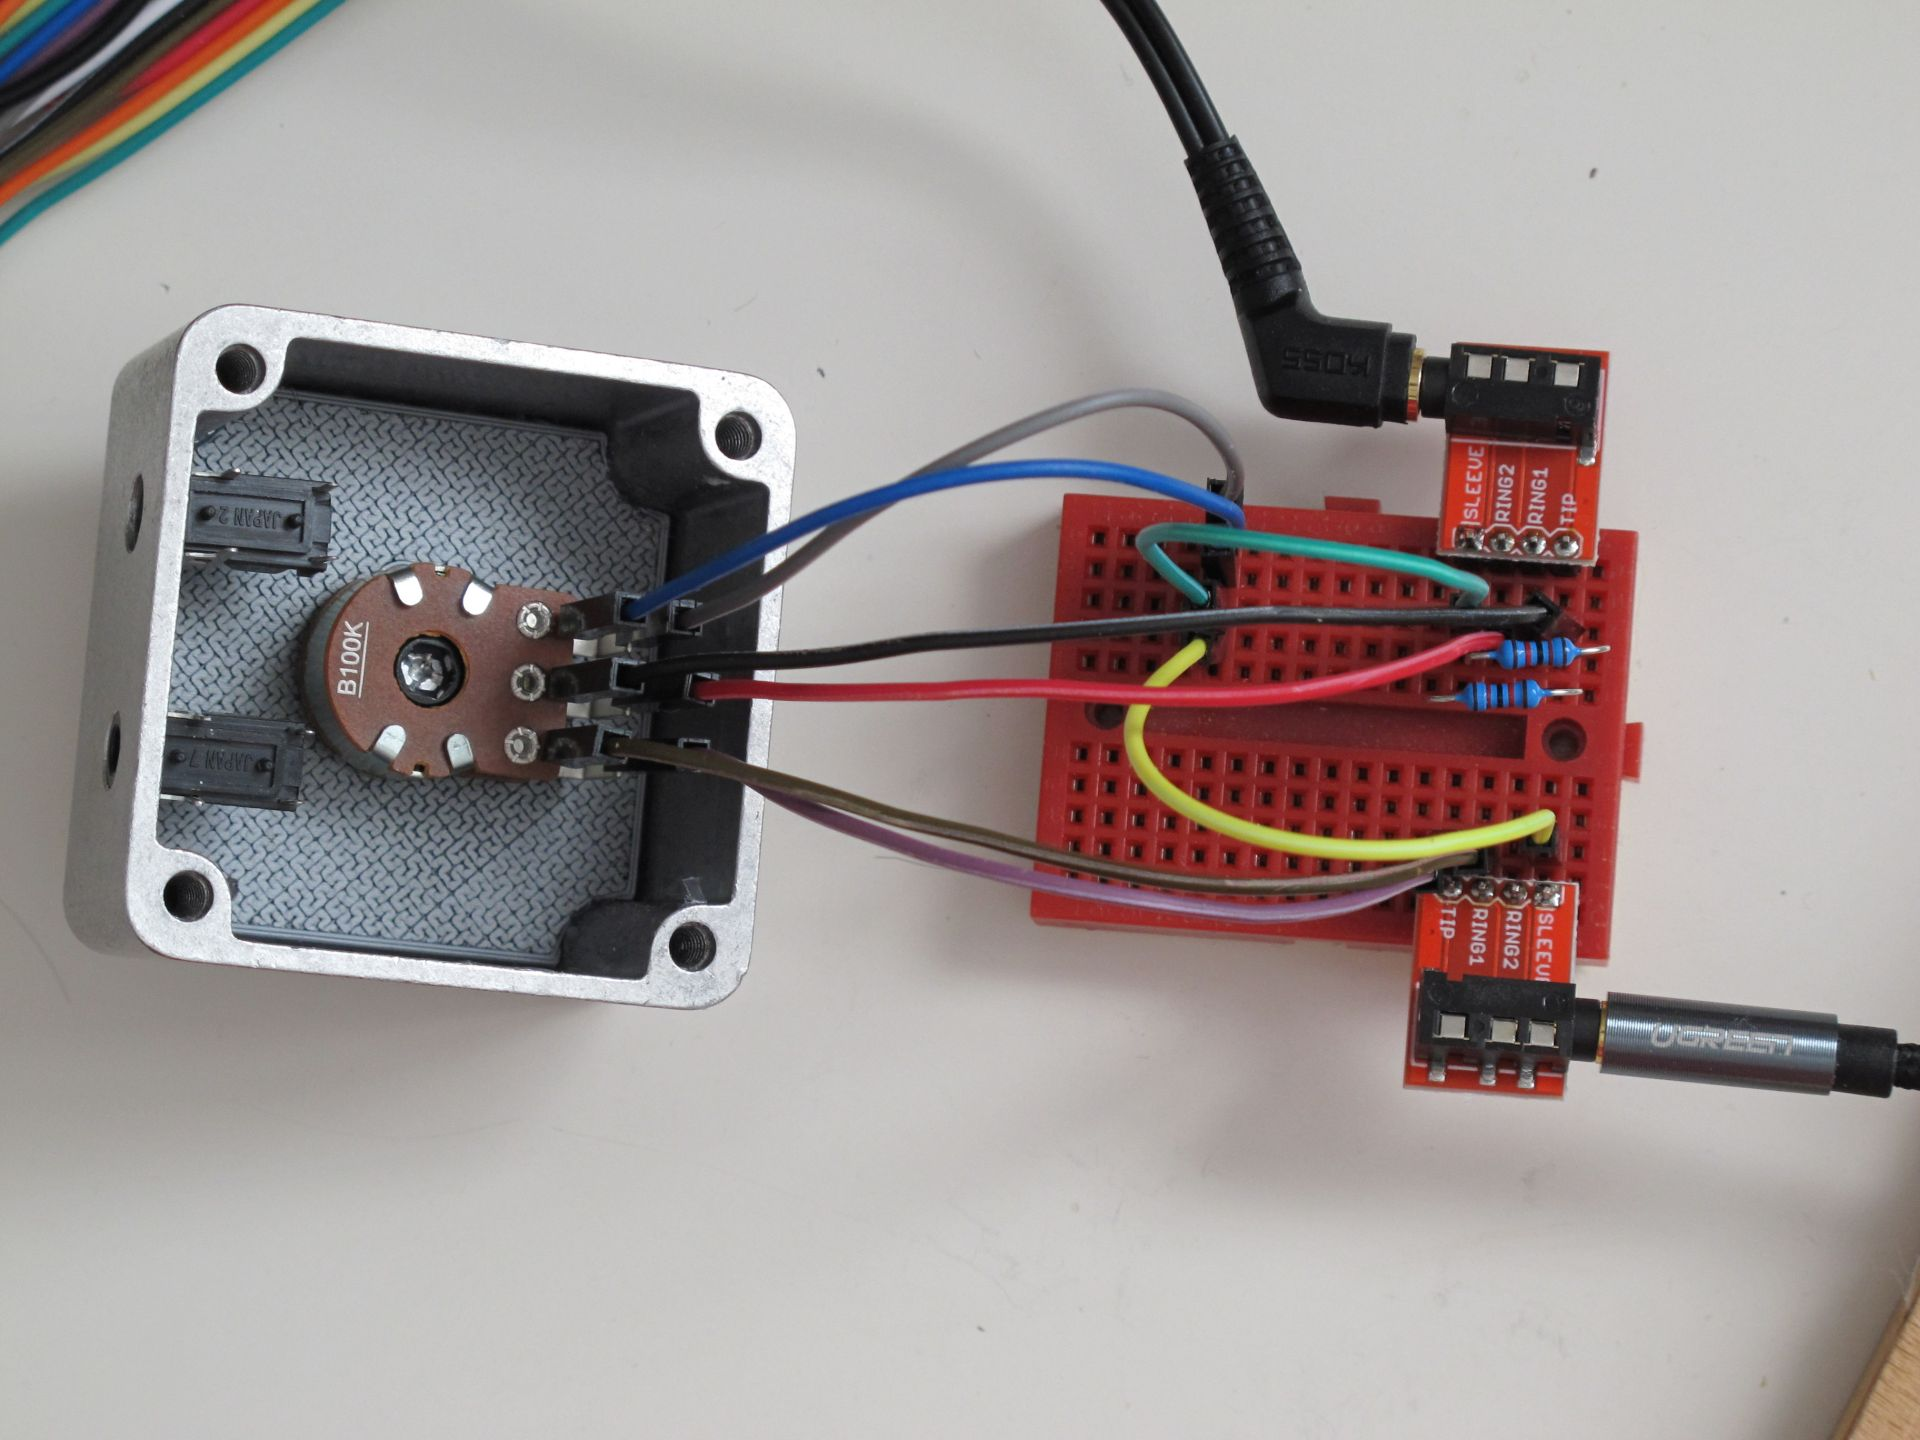 Quick tests of the device before soldering